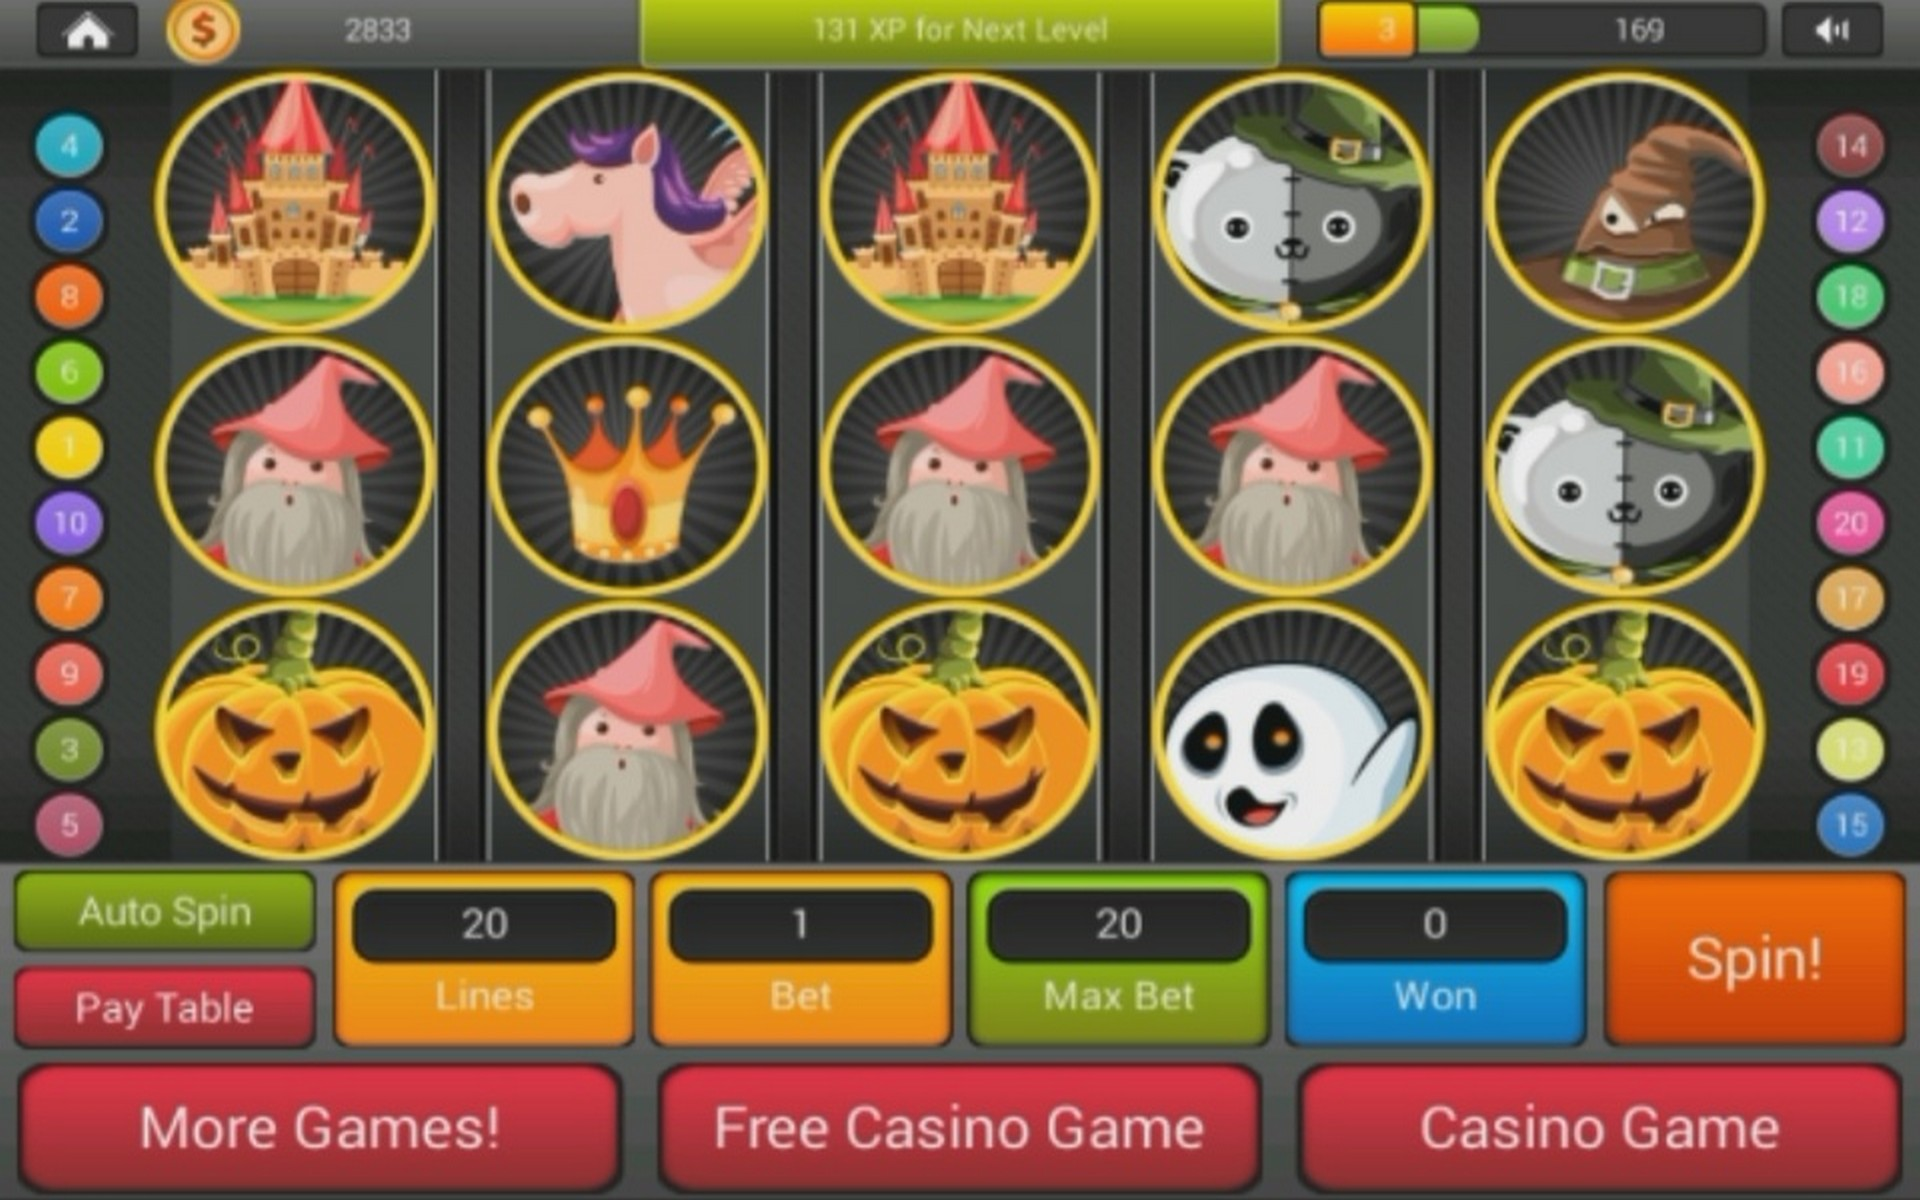 Geisha slots for android harrington poker volume 1 triple fortune dragon online slot by igt has stunning 5 android casinos the slot is so orientally oriented you can almost hear the swish of the geishas izmirmasajfo